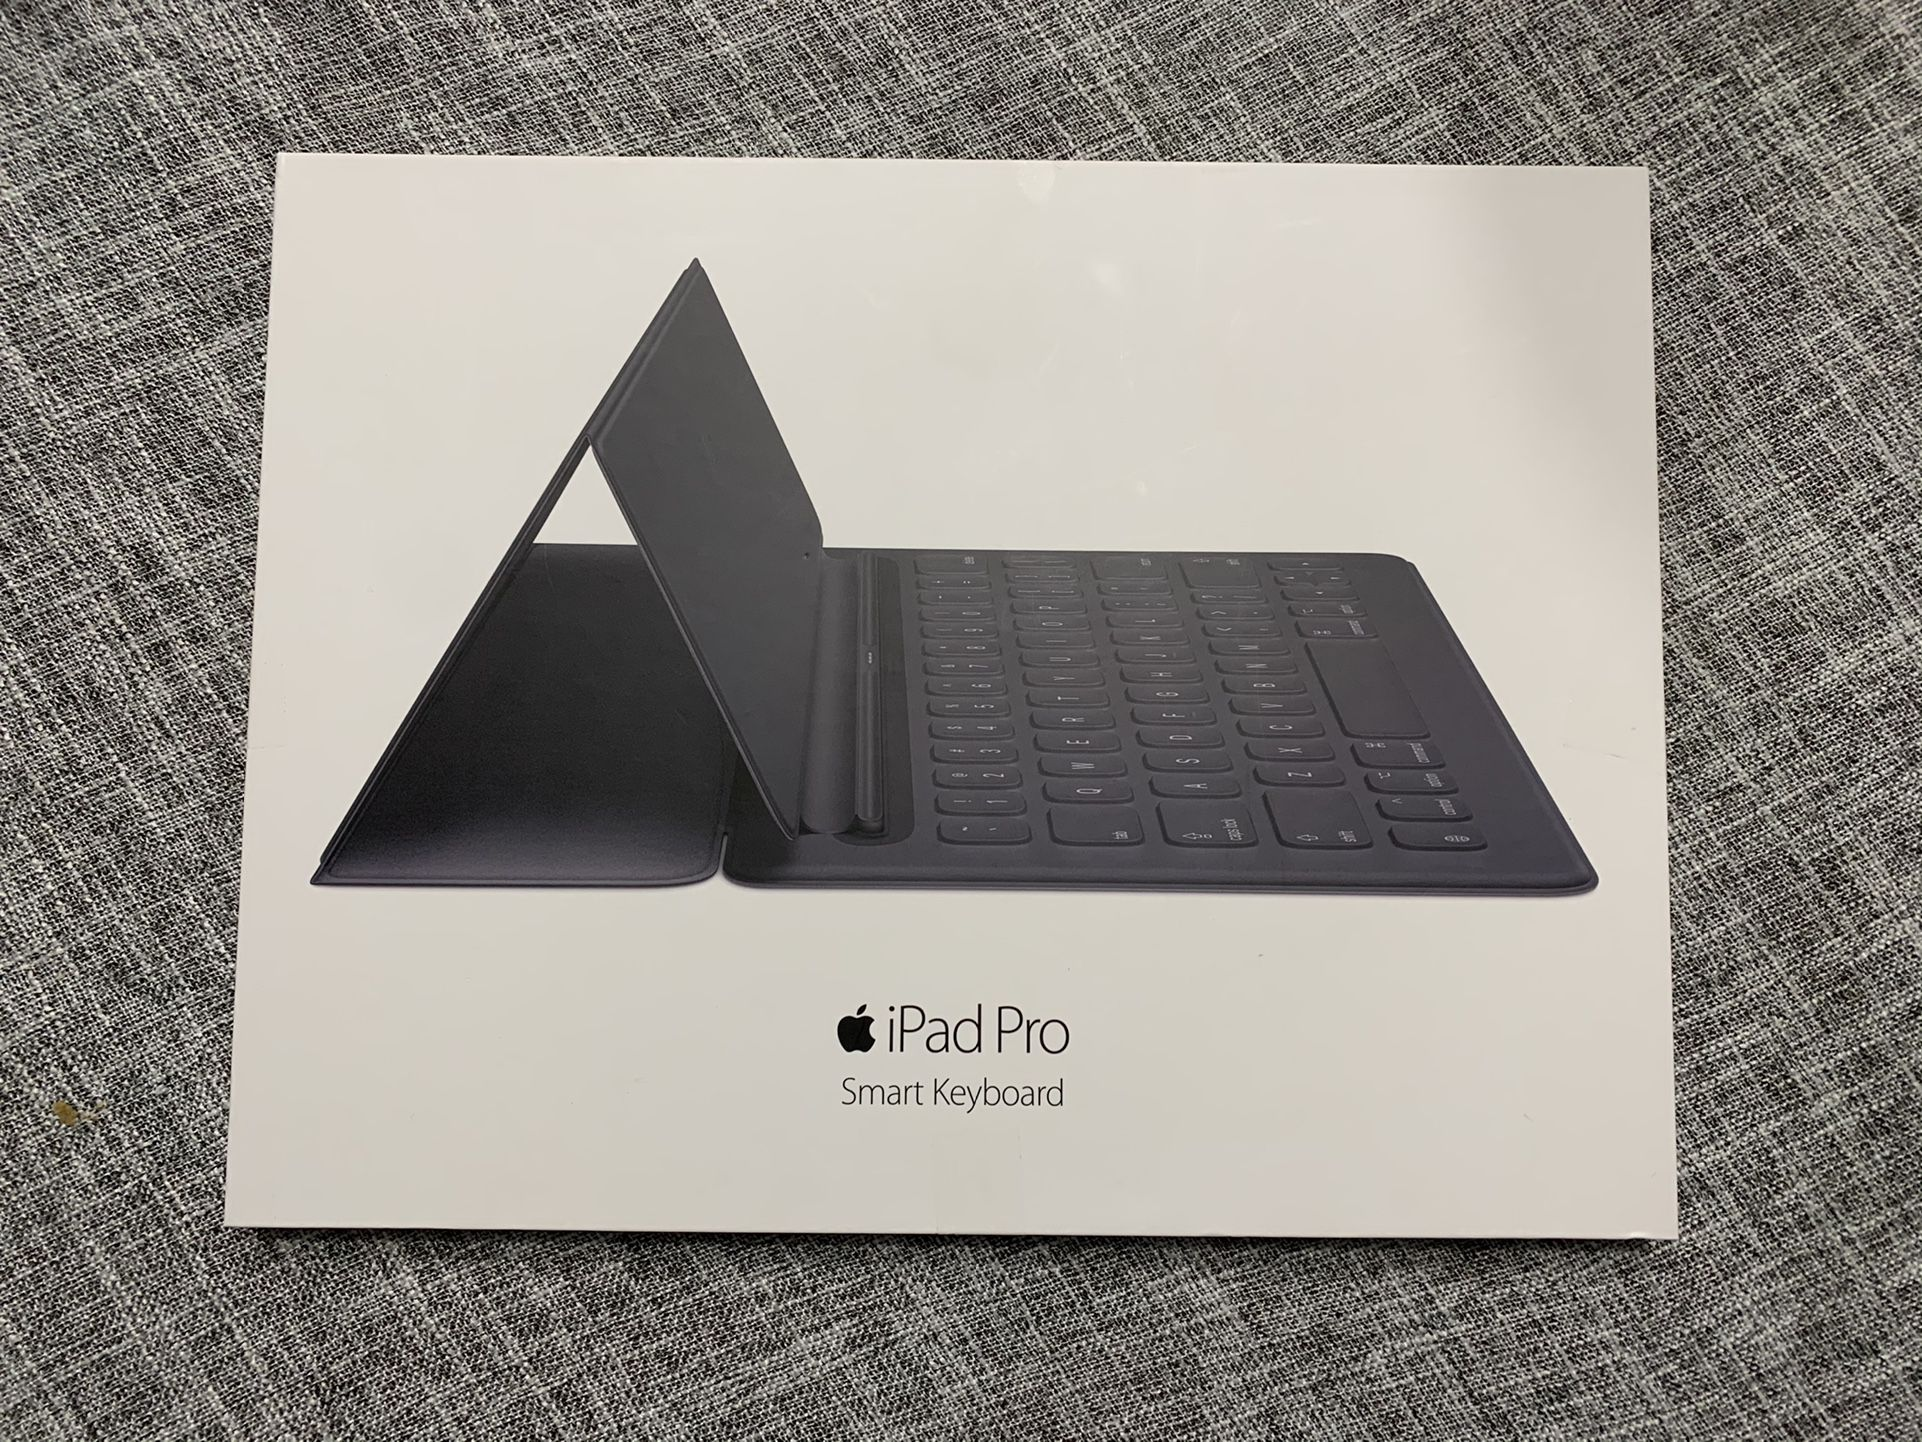 Ipad Pro 2nd Generation with Apple pencil, smart keyboard, and folding case